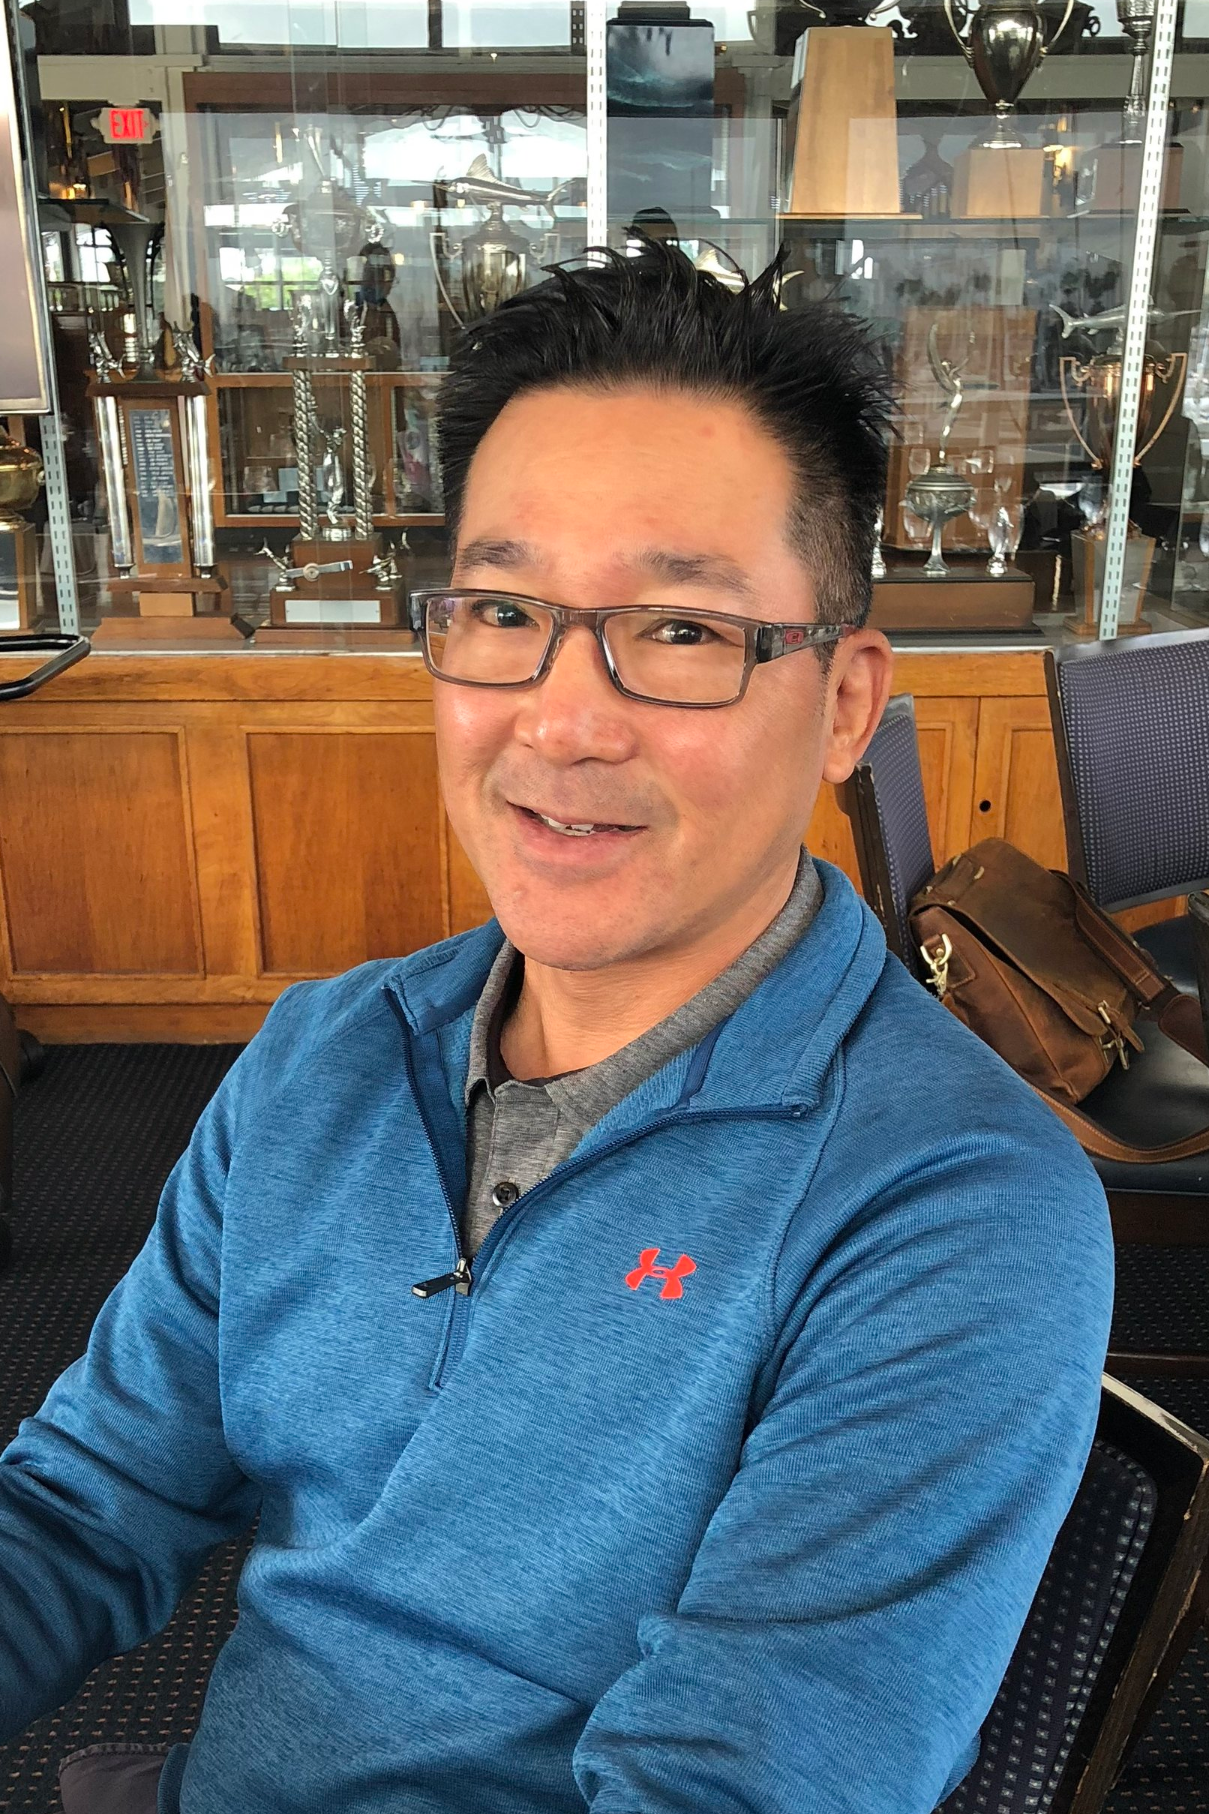 Brian Fong, MD - Medical School: New York Medical CollegeResidency: Cook CountyYear Joined: 1999Career Highlights: Department ChairSpecial Interests: Golf, International Volunteering, Basketball, Photography, Autocross